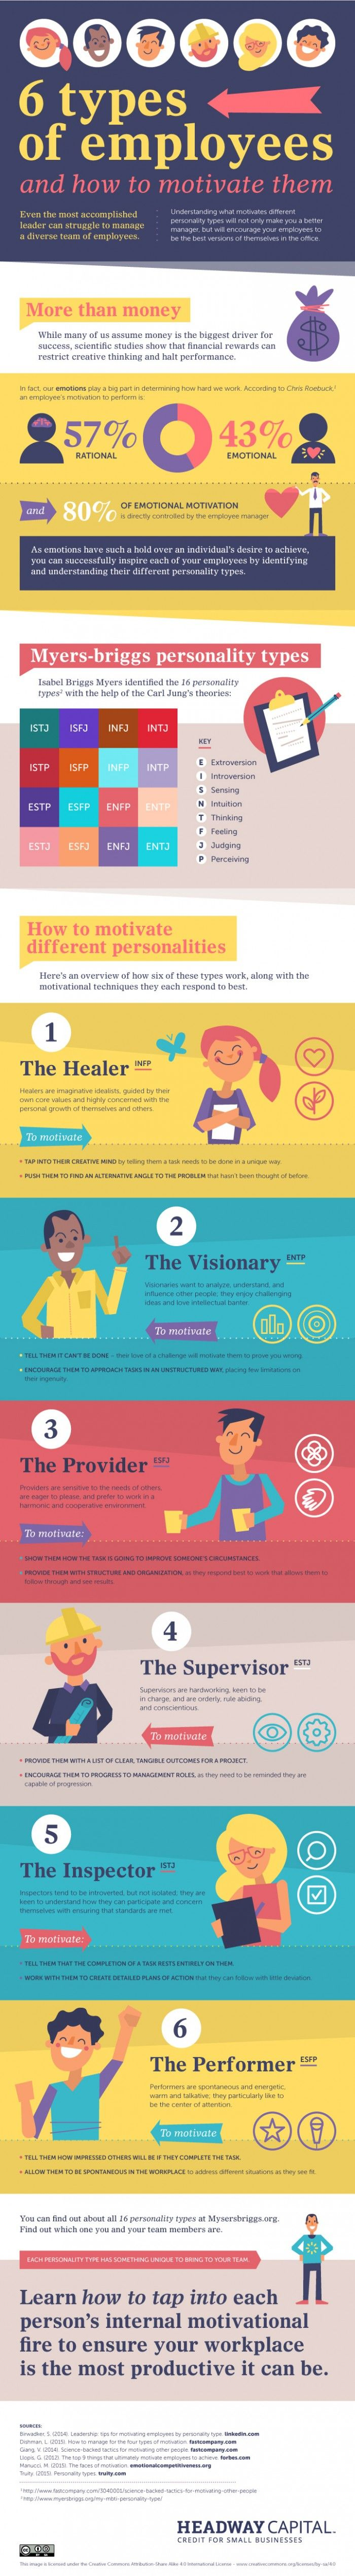 6 Types Of Employees And How To Motivate Them [Infographic